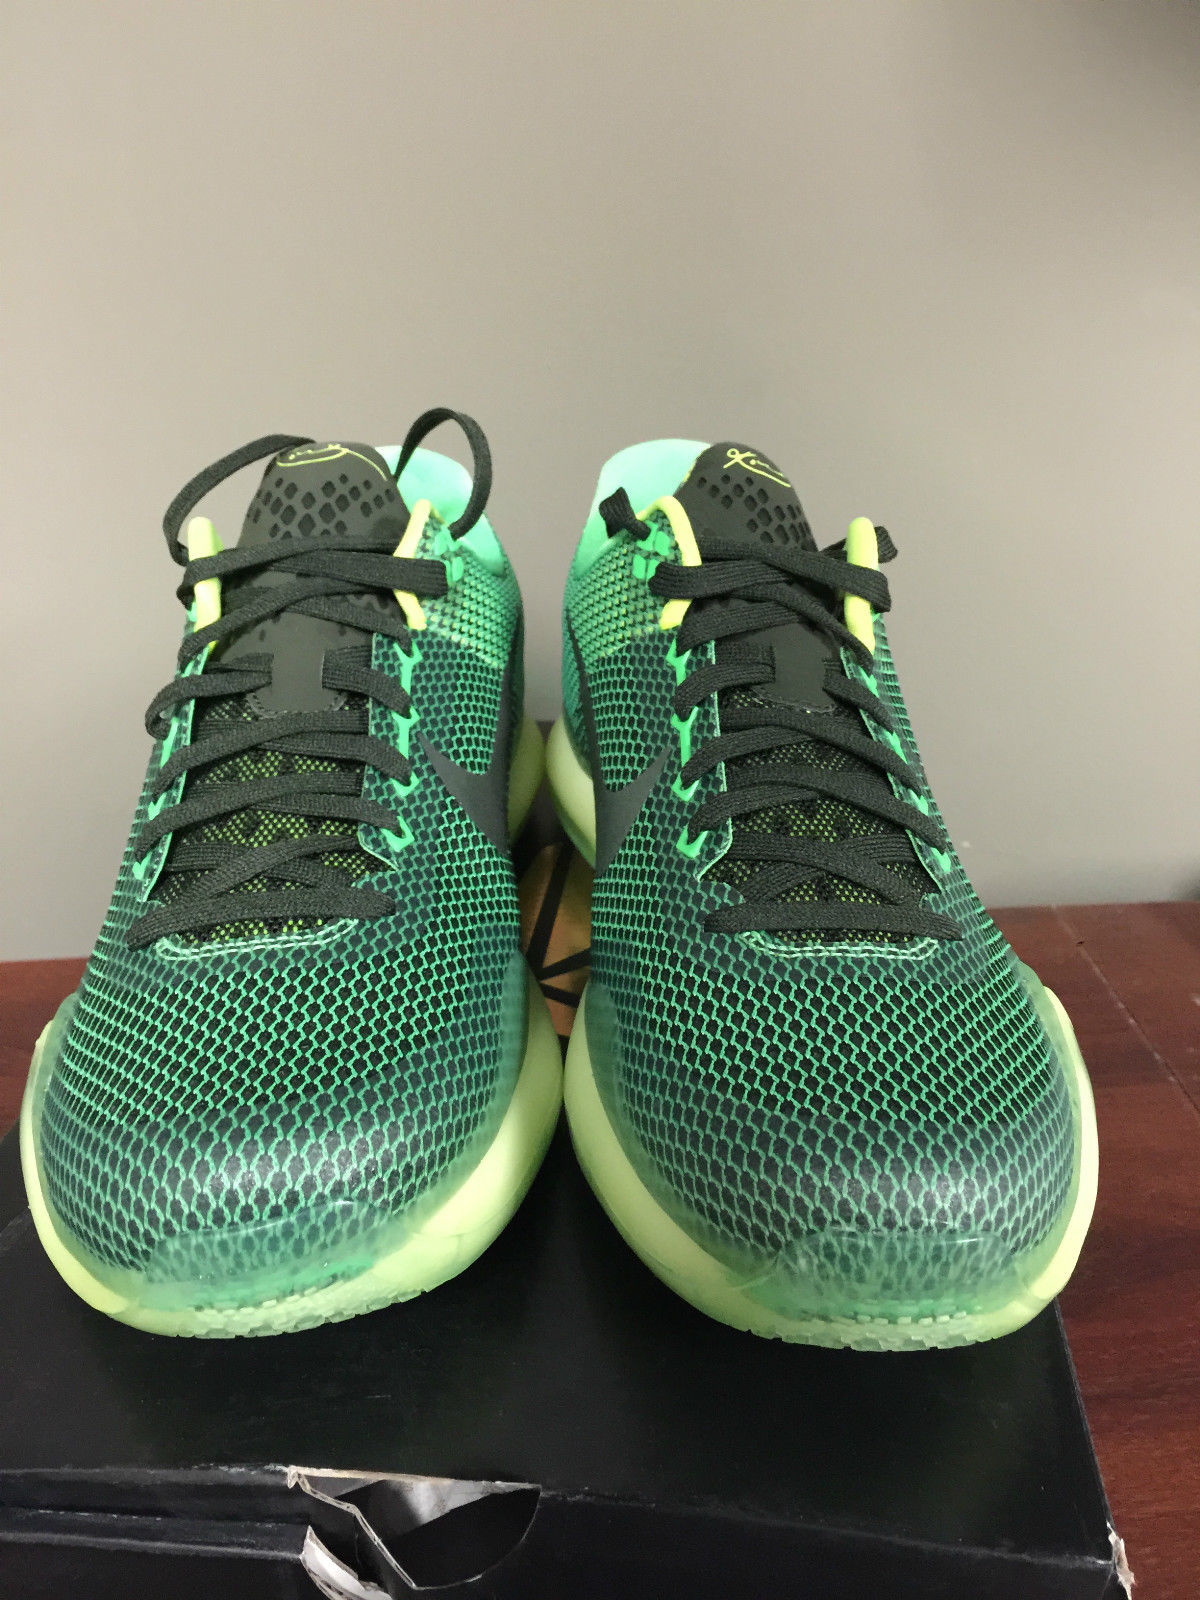 Nike Kobe X 'Vino' - Available Now - WearTesters